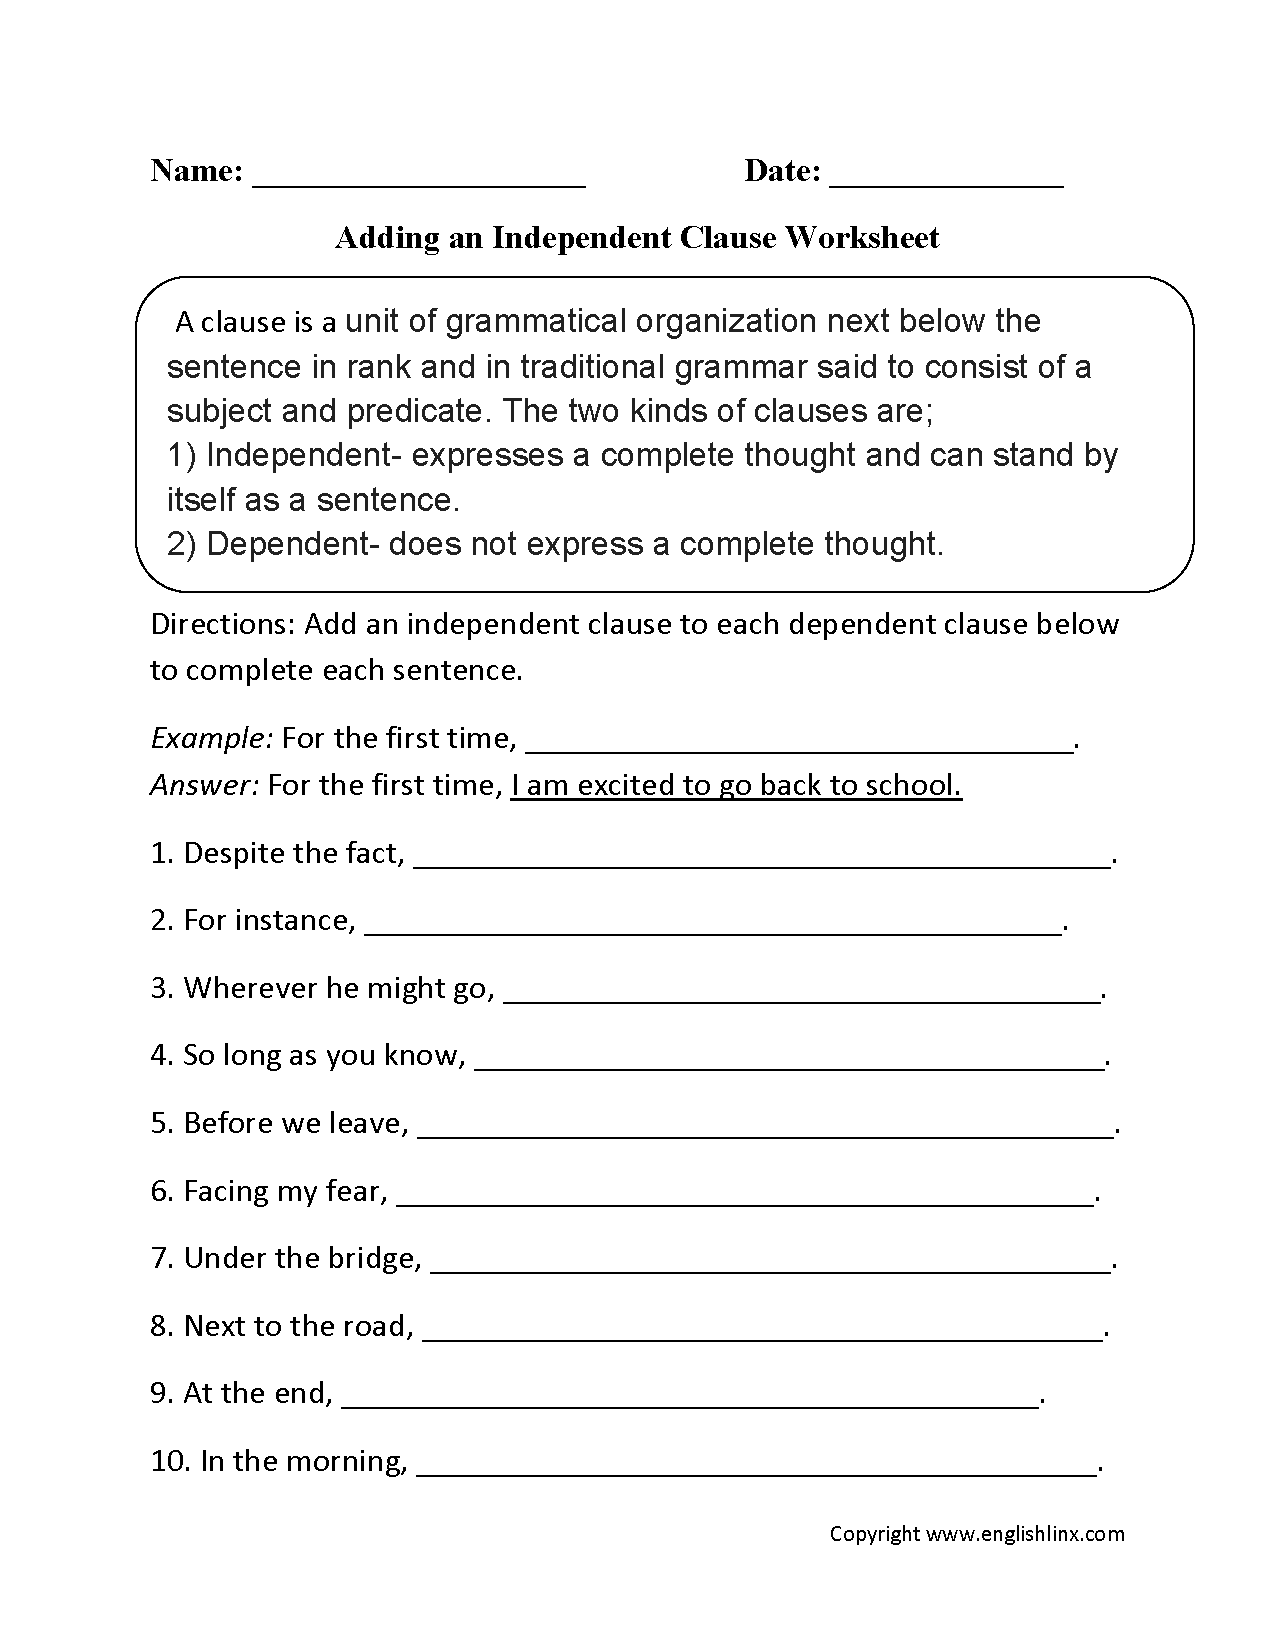 Adding an Independent Clause Worksheet  Englishlinx.com Board  Pinterest  Worksheets and Adverbs